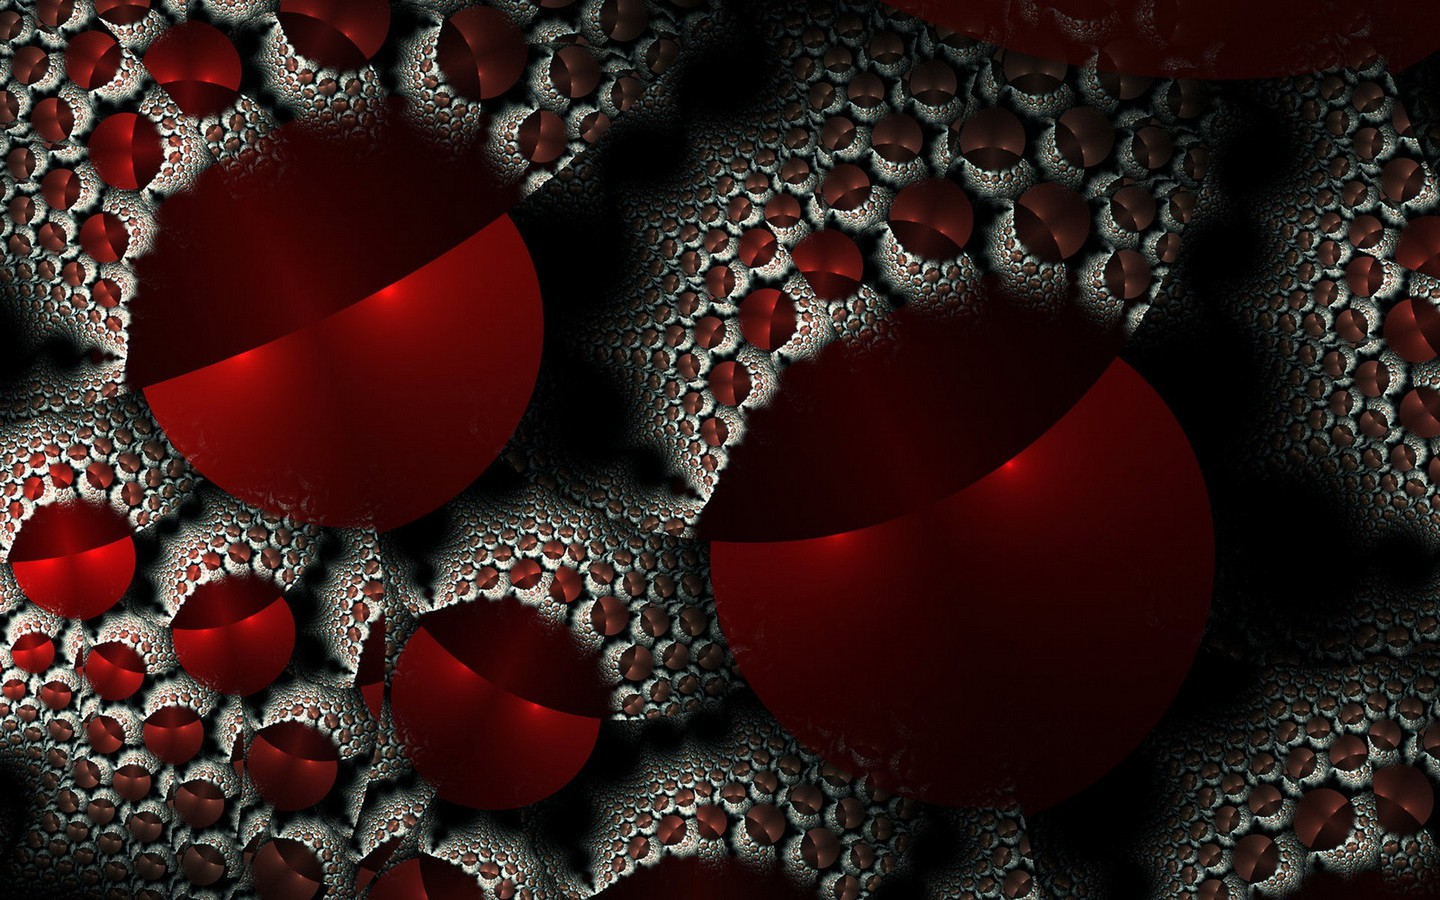 Thunderstorm Wallpaper 3d Abstract Red Fractals Fractal Wallpaper Allwallpaper In